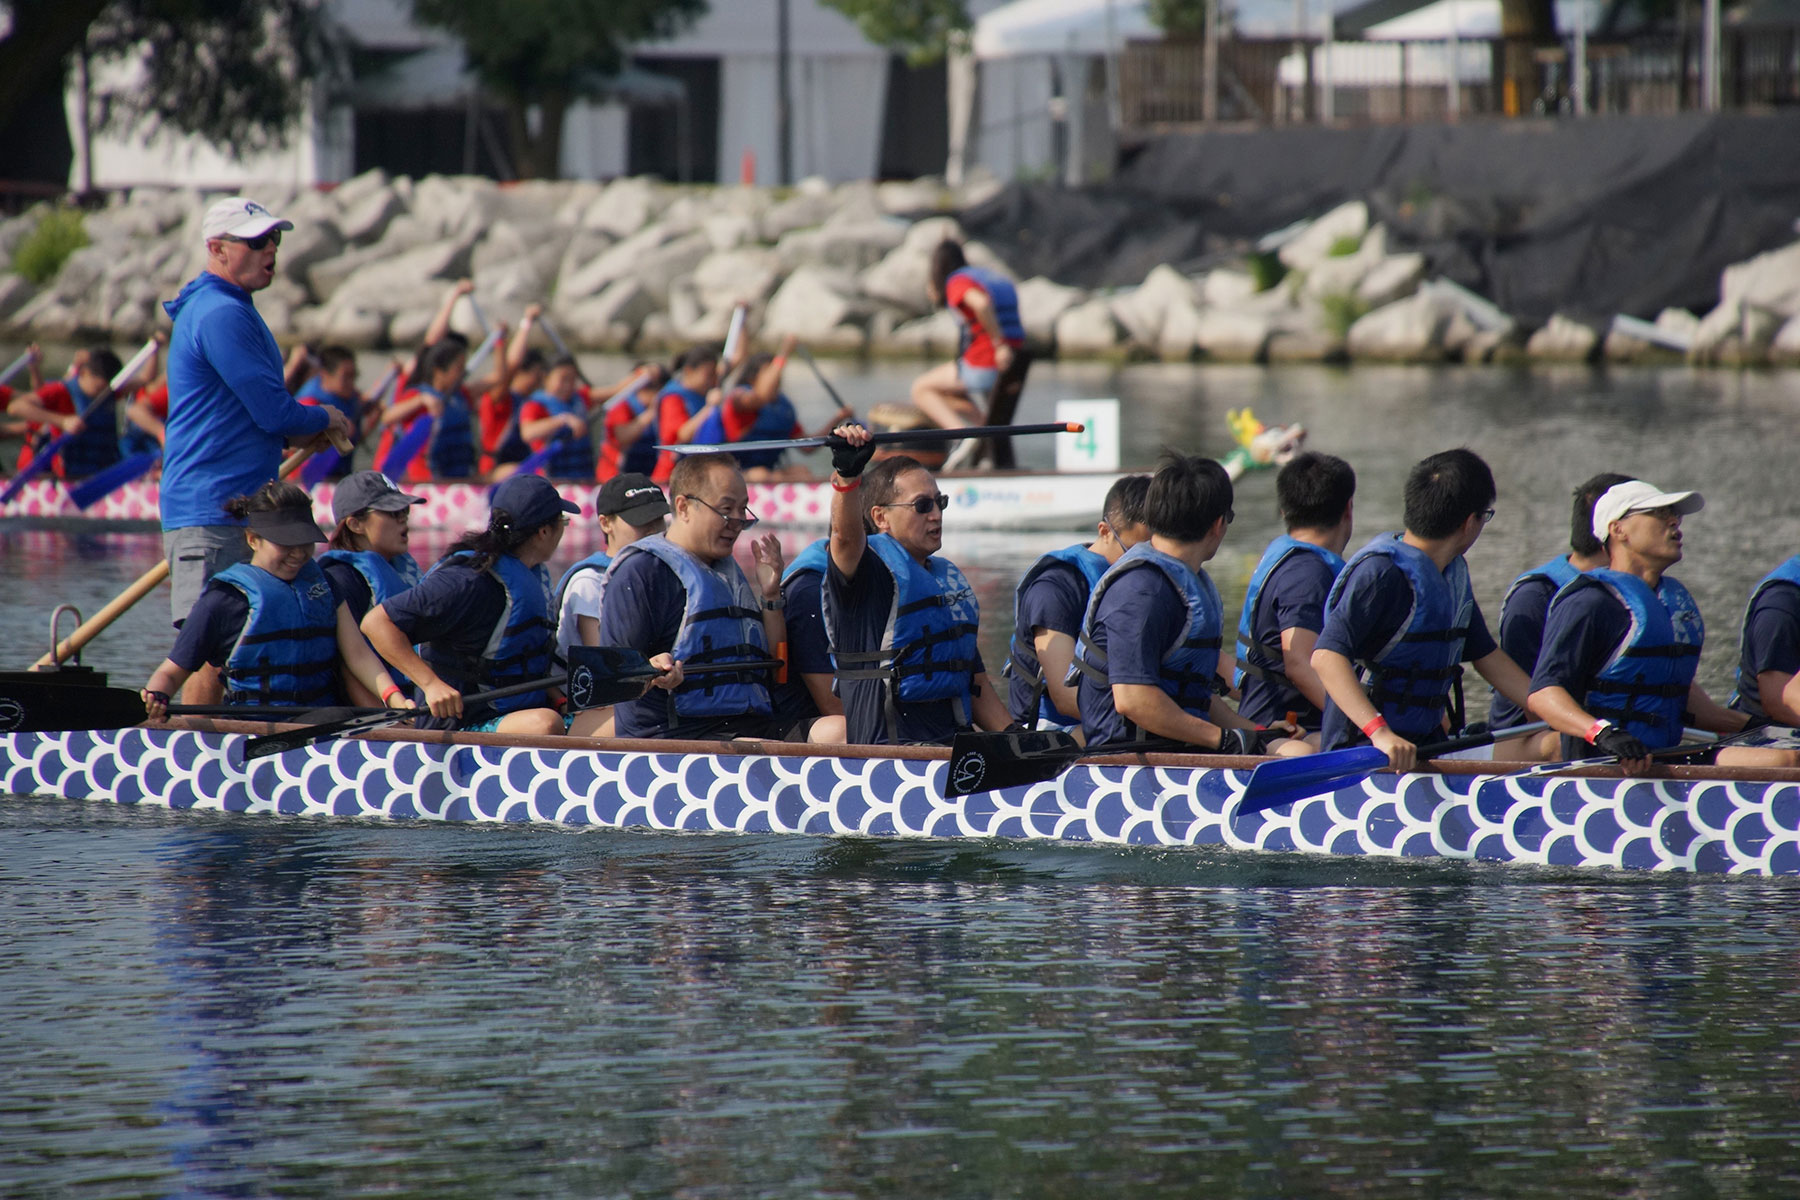 081118_dragonboat_508